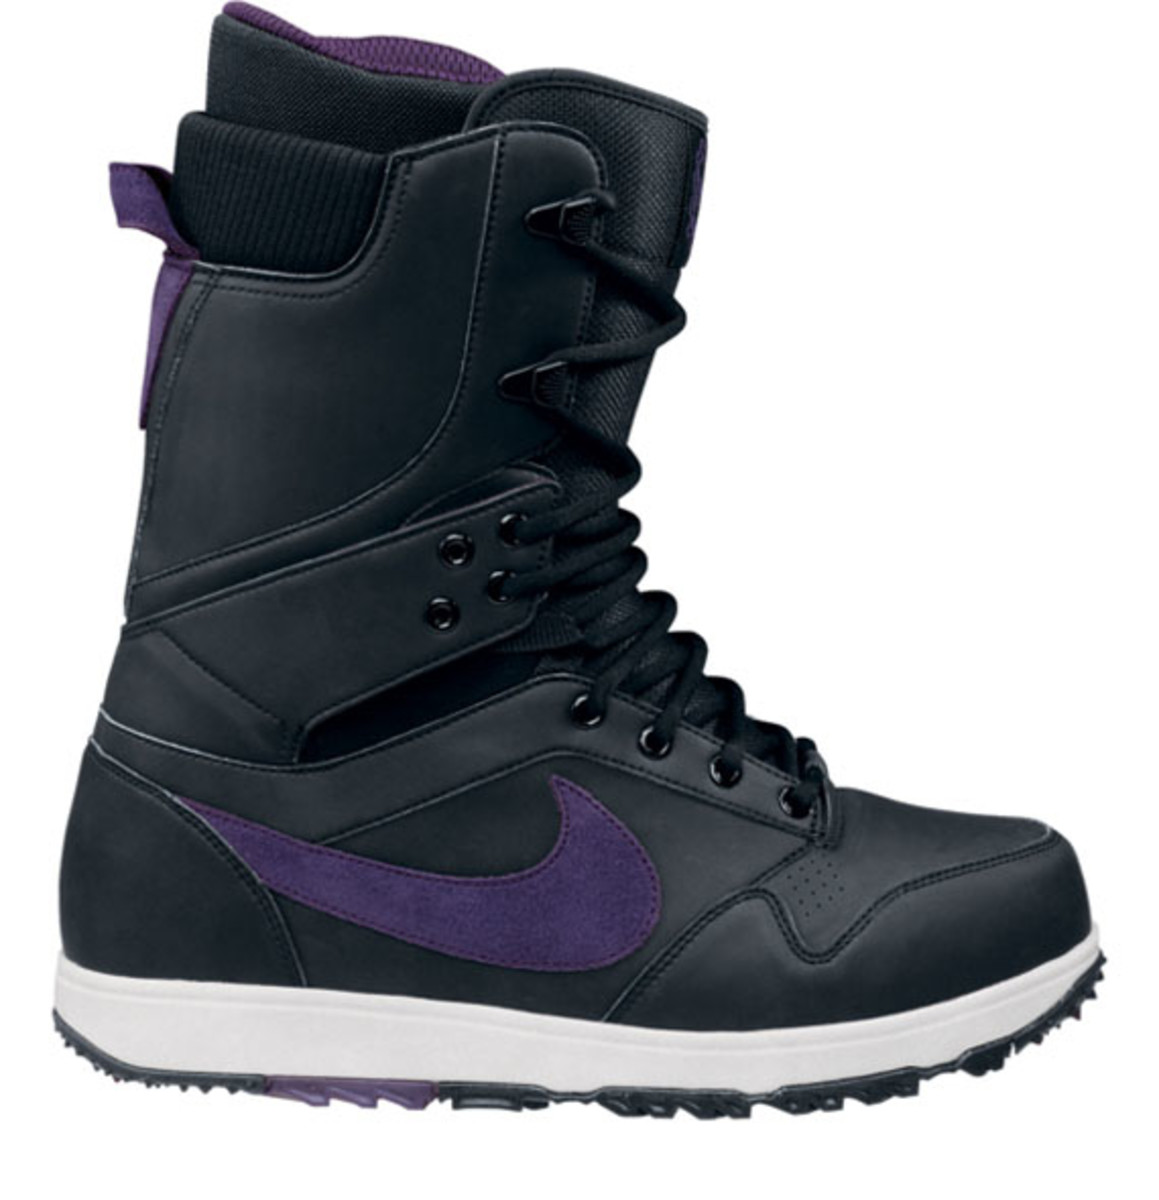 nike-snowboarding-boots-1